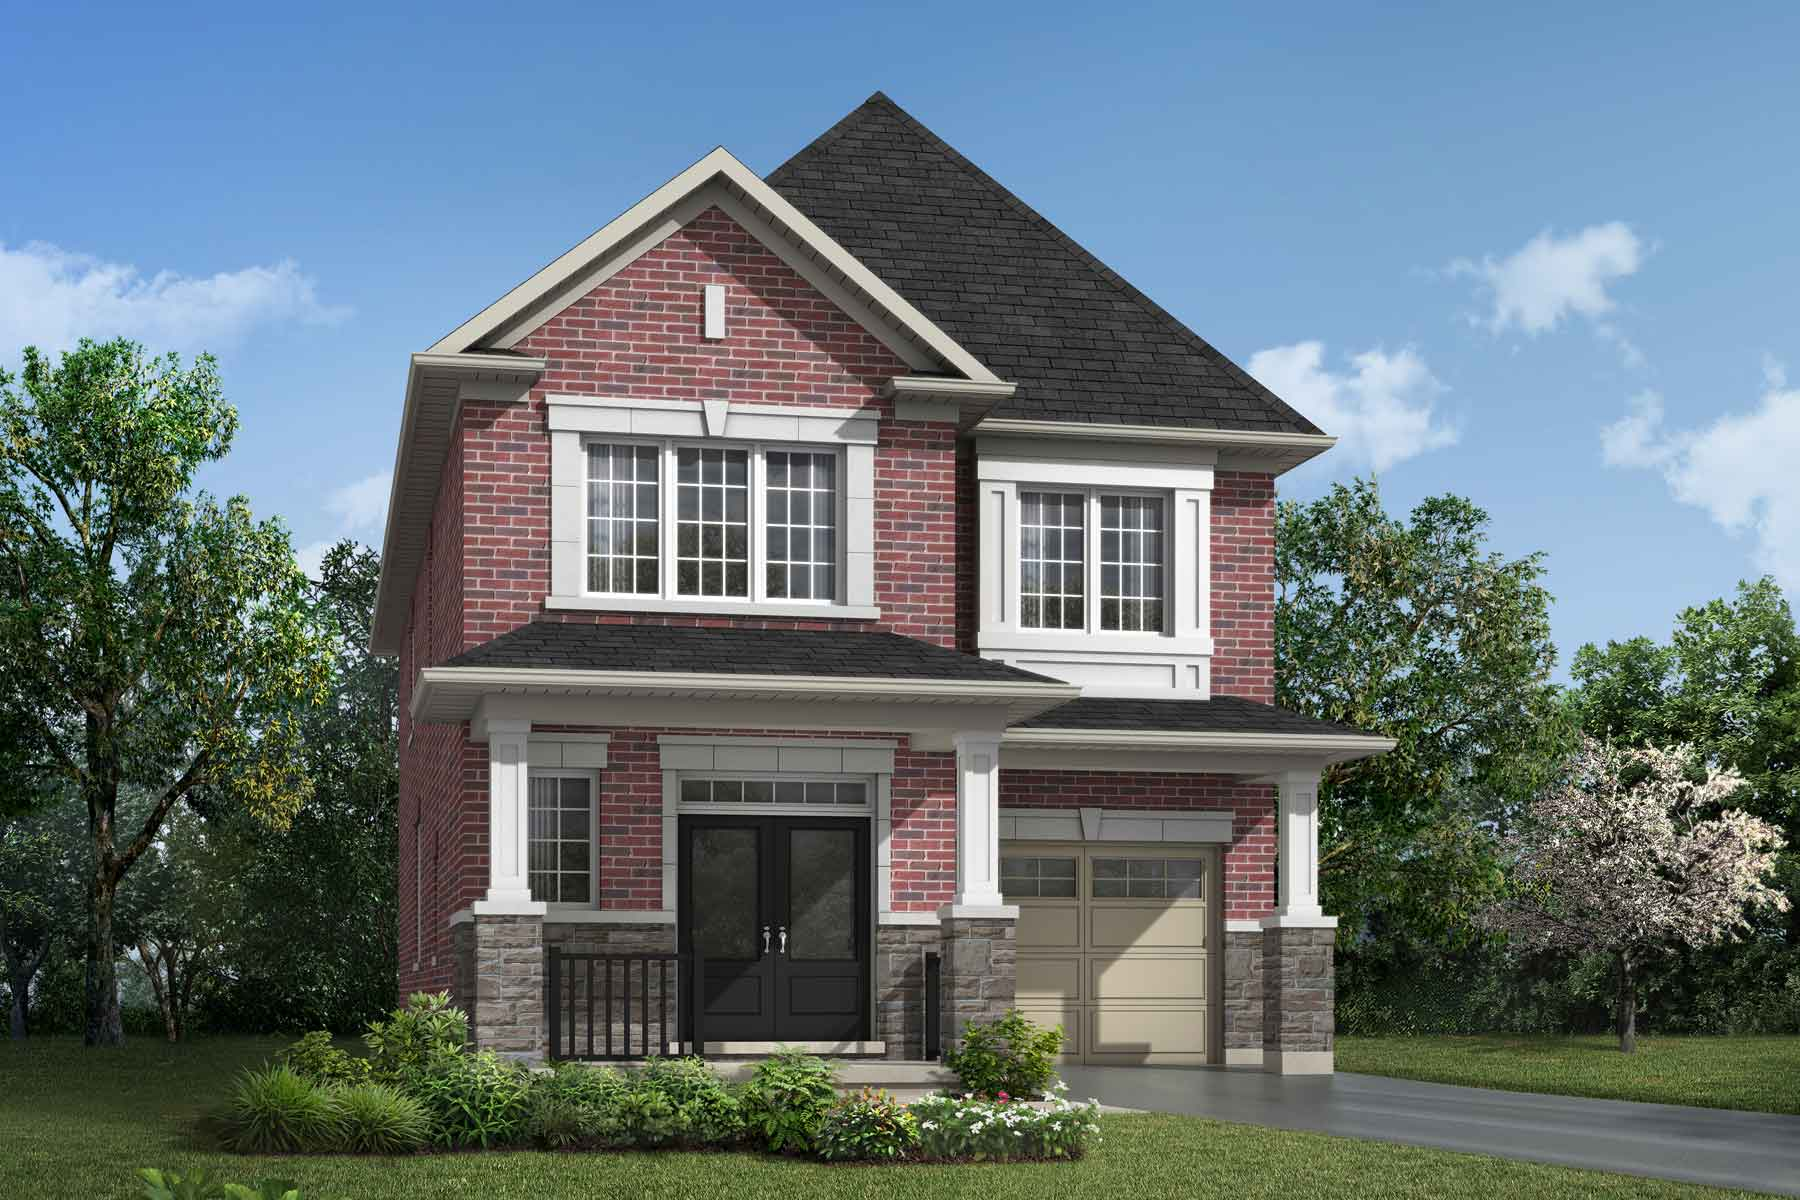 The Oxford Plan traditional_southestates_oxford_main at Wildflower Crossing in Kitchener Ontario by Mattamy Homes